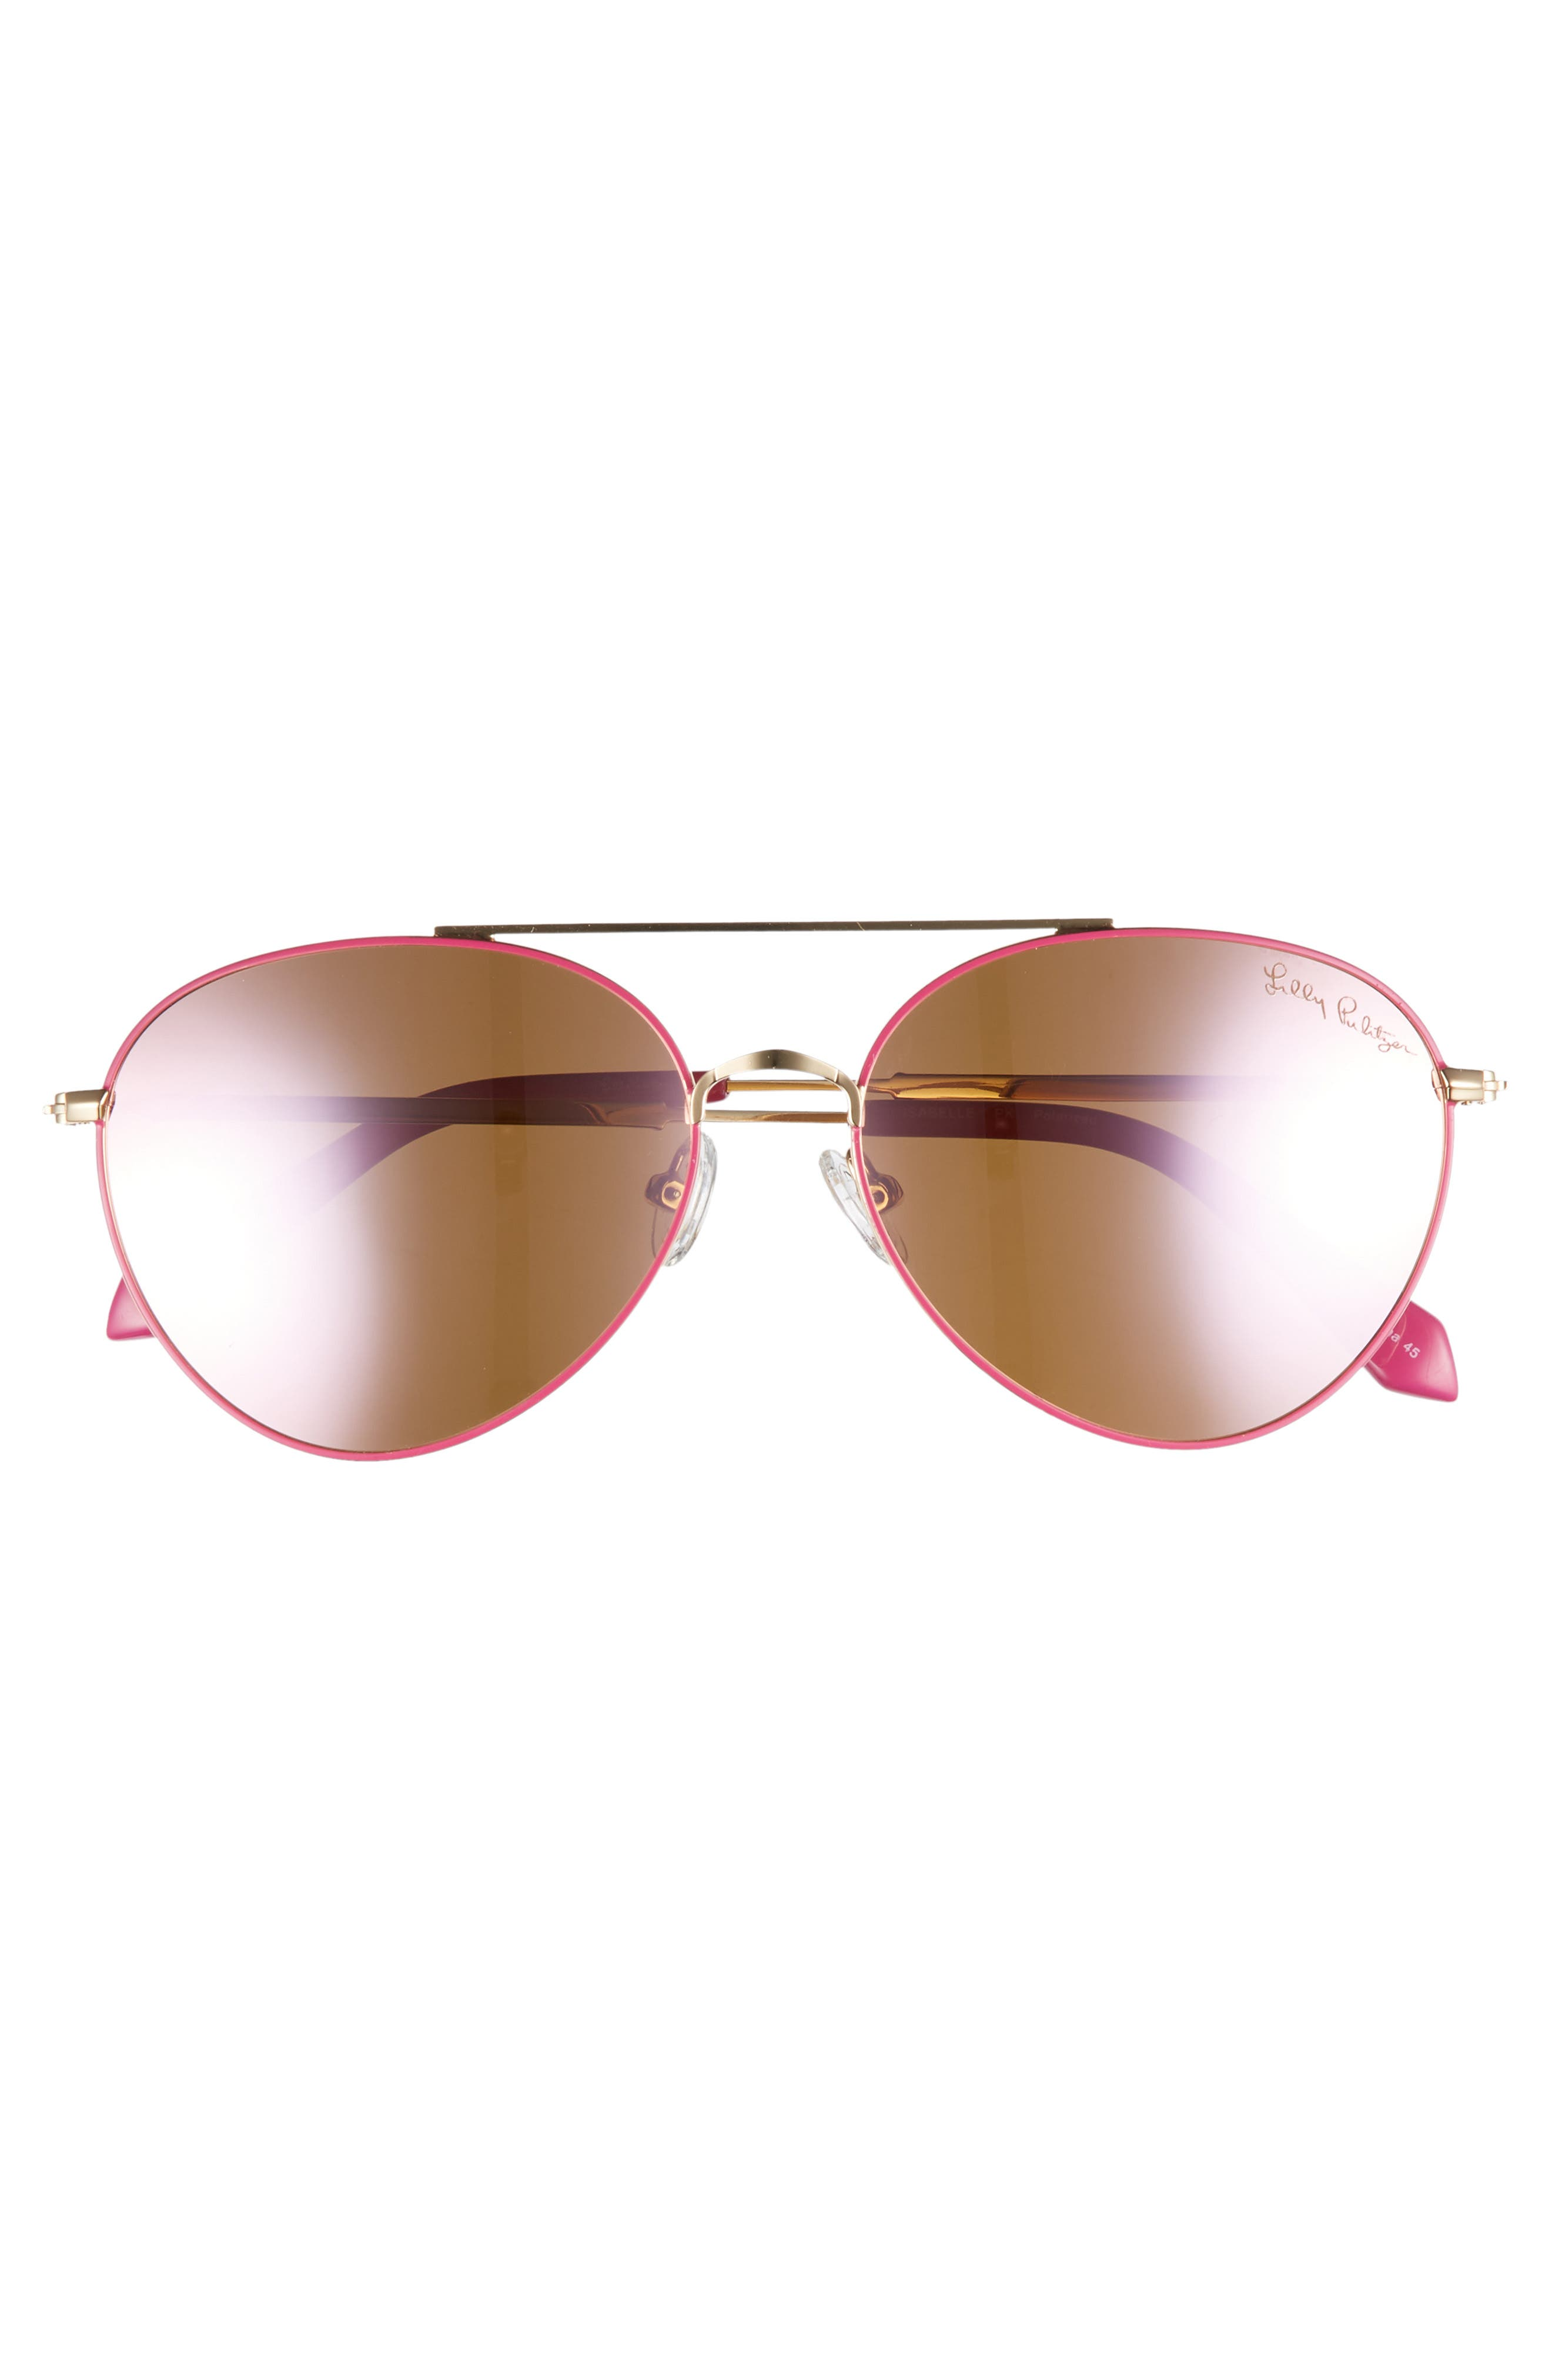 Isabelle 56mm Polarized Metal Aviator Sunglasses,                             Alternate thumbnail 3, color,                             PINK/ PINK